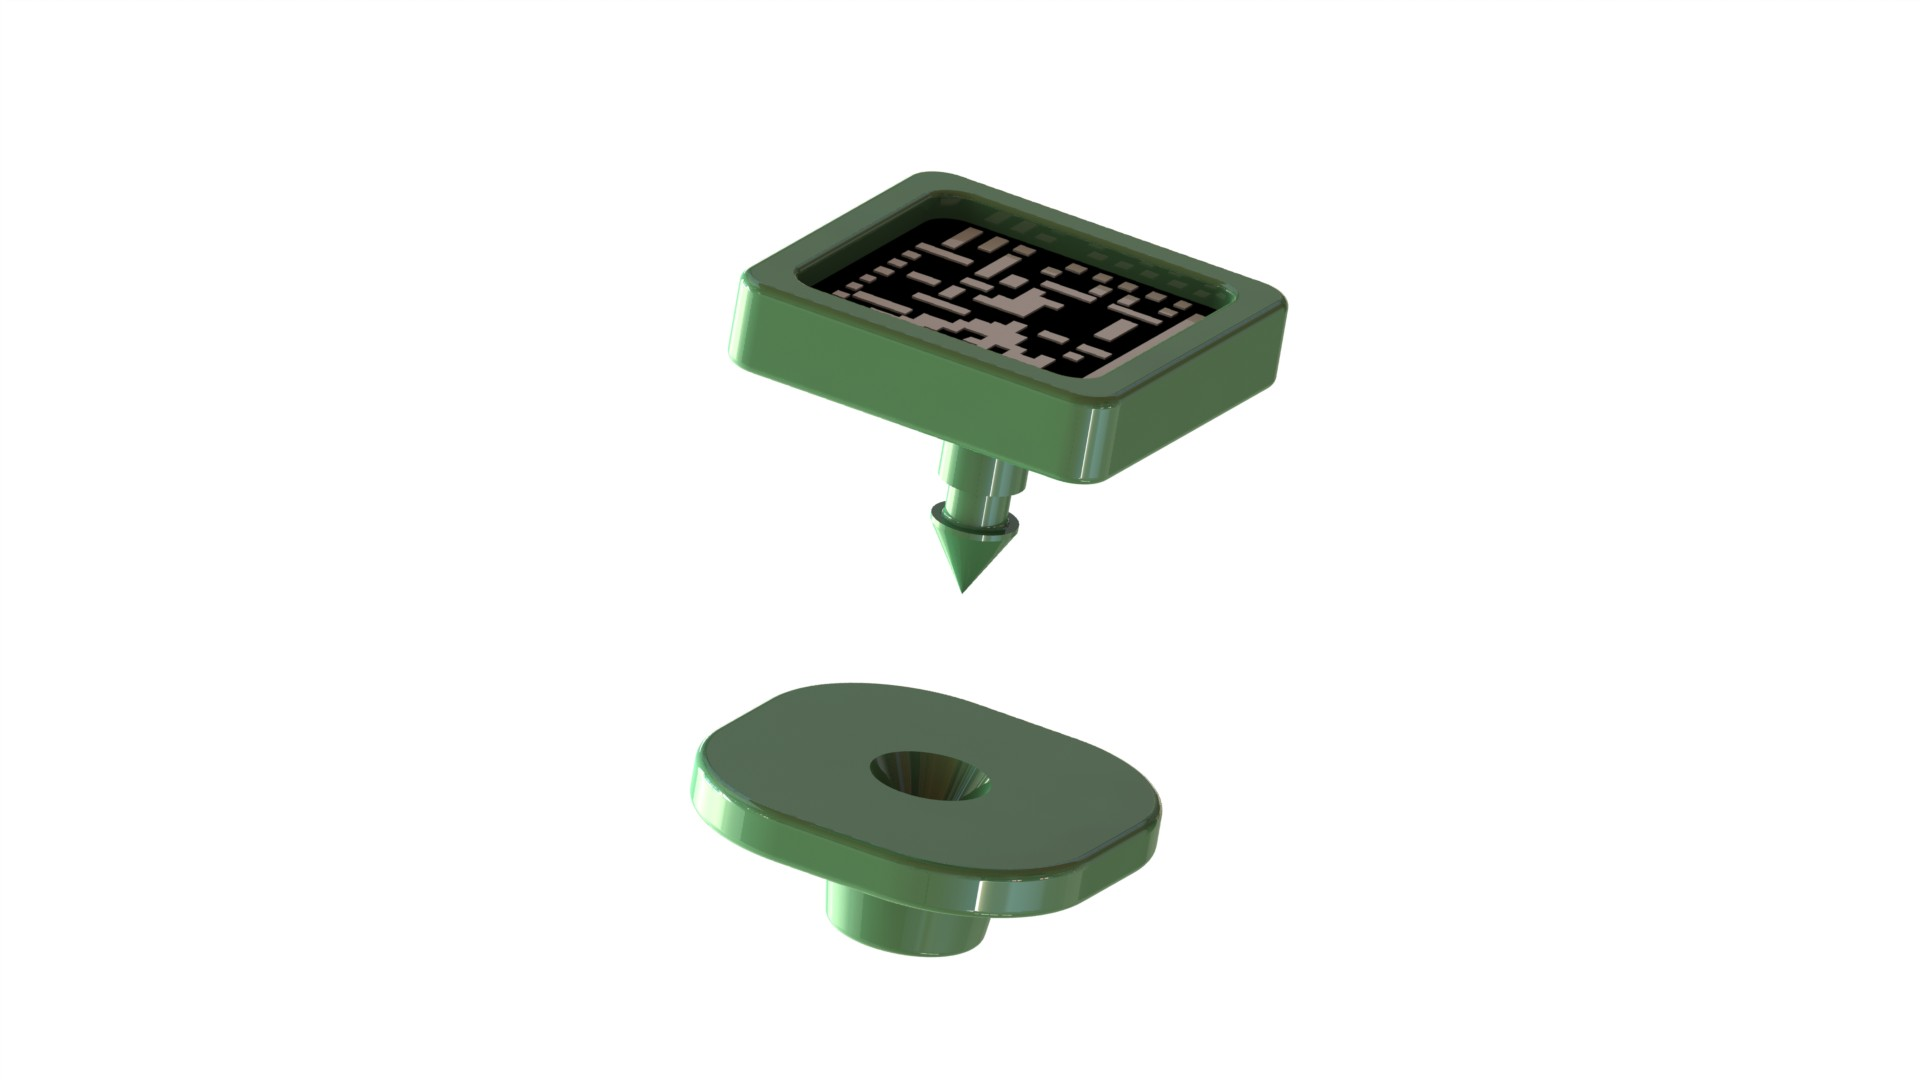 Product Design Swope Solutions Electronic Pendulum Circuit Mf Green